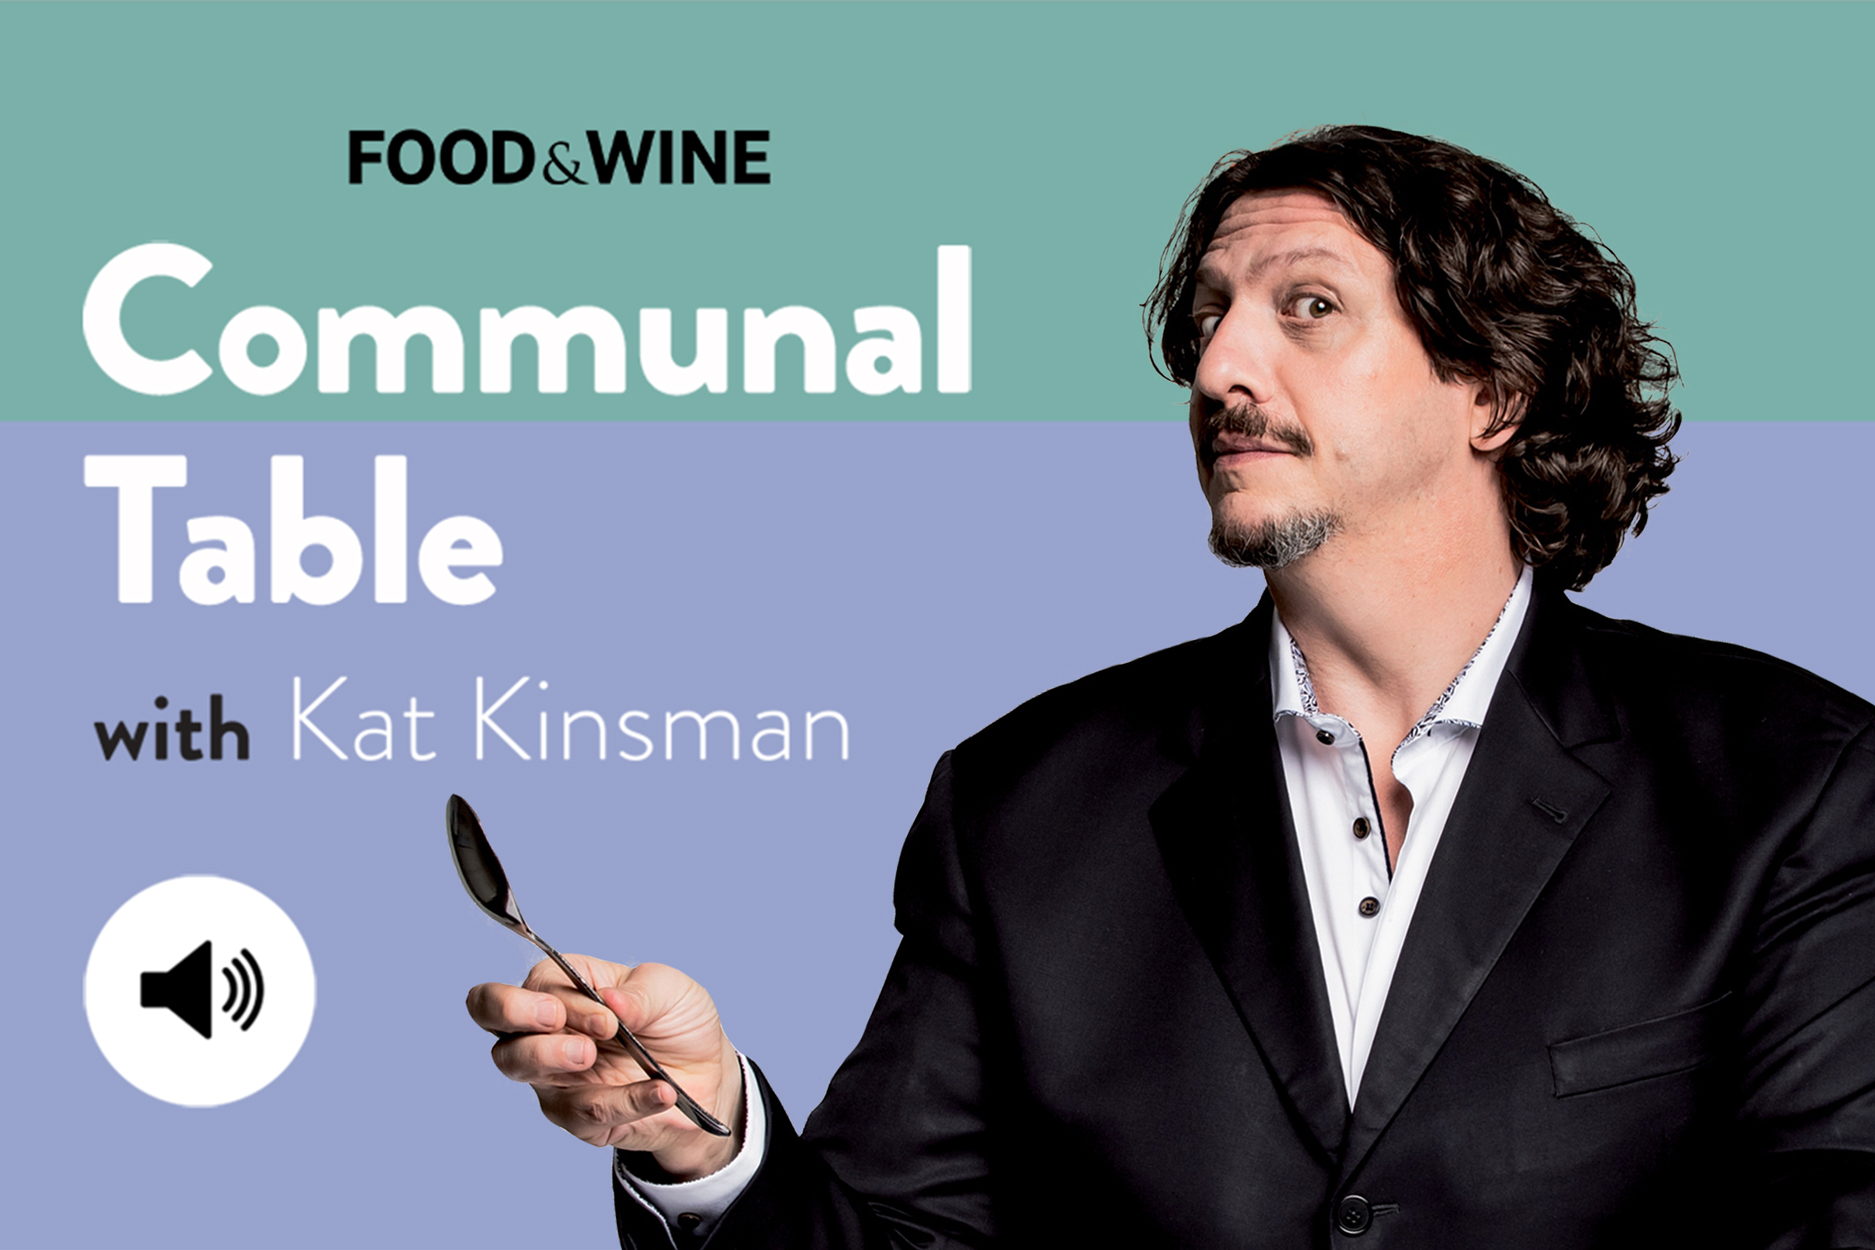 Communal Table with Kat Kinsman featuring Jay Rayner